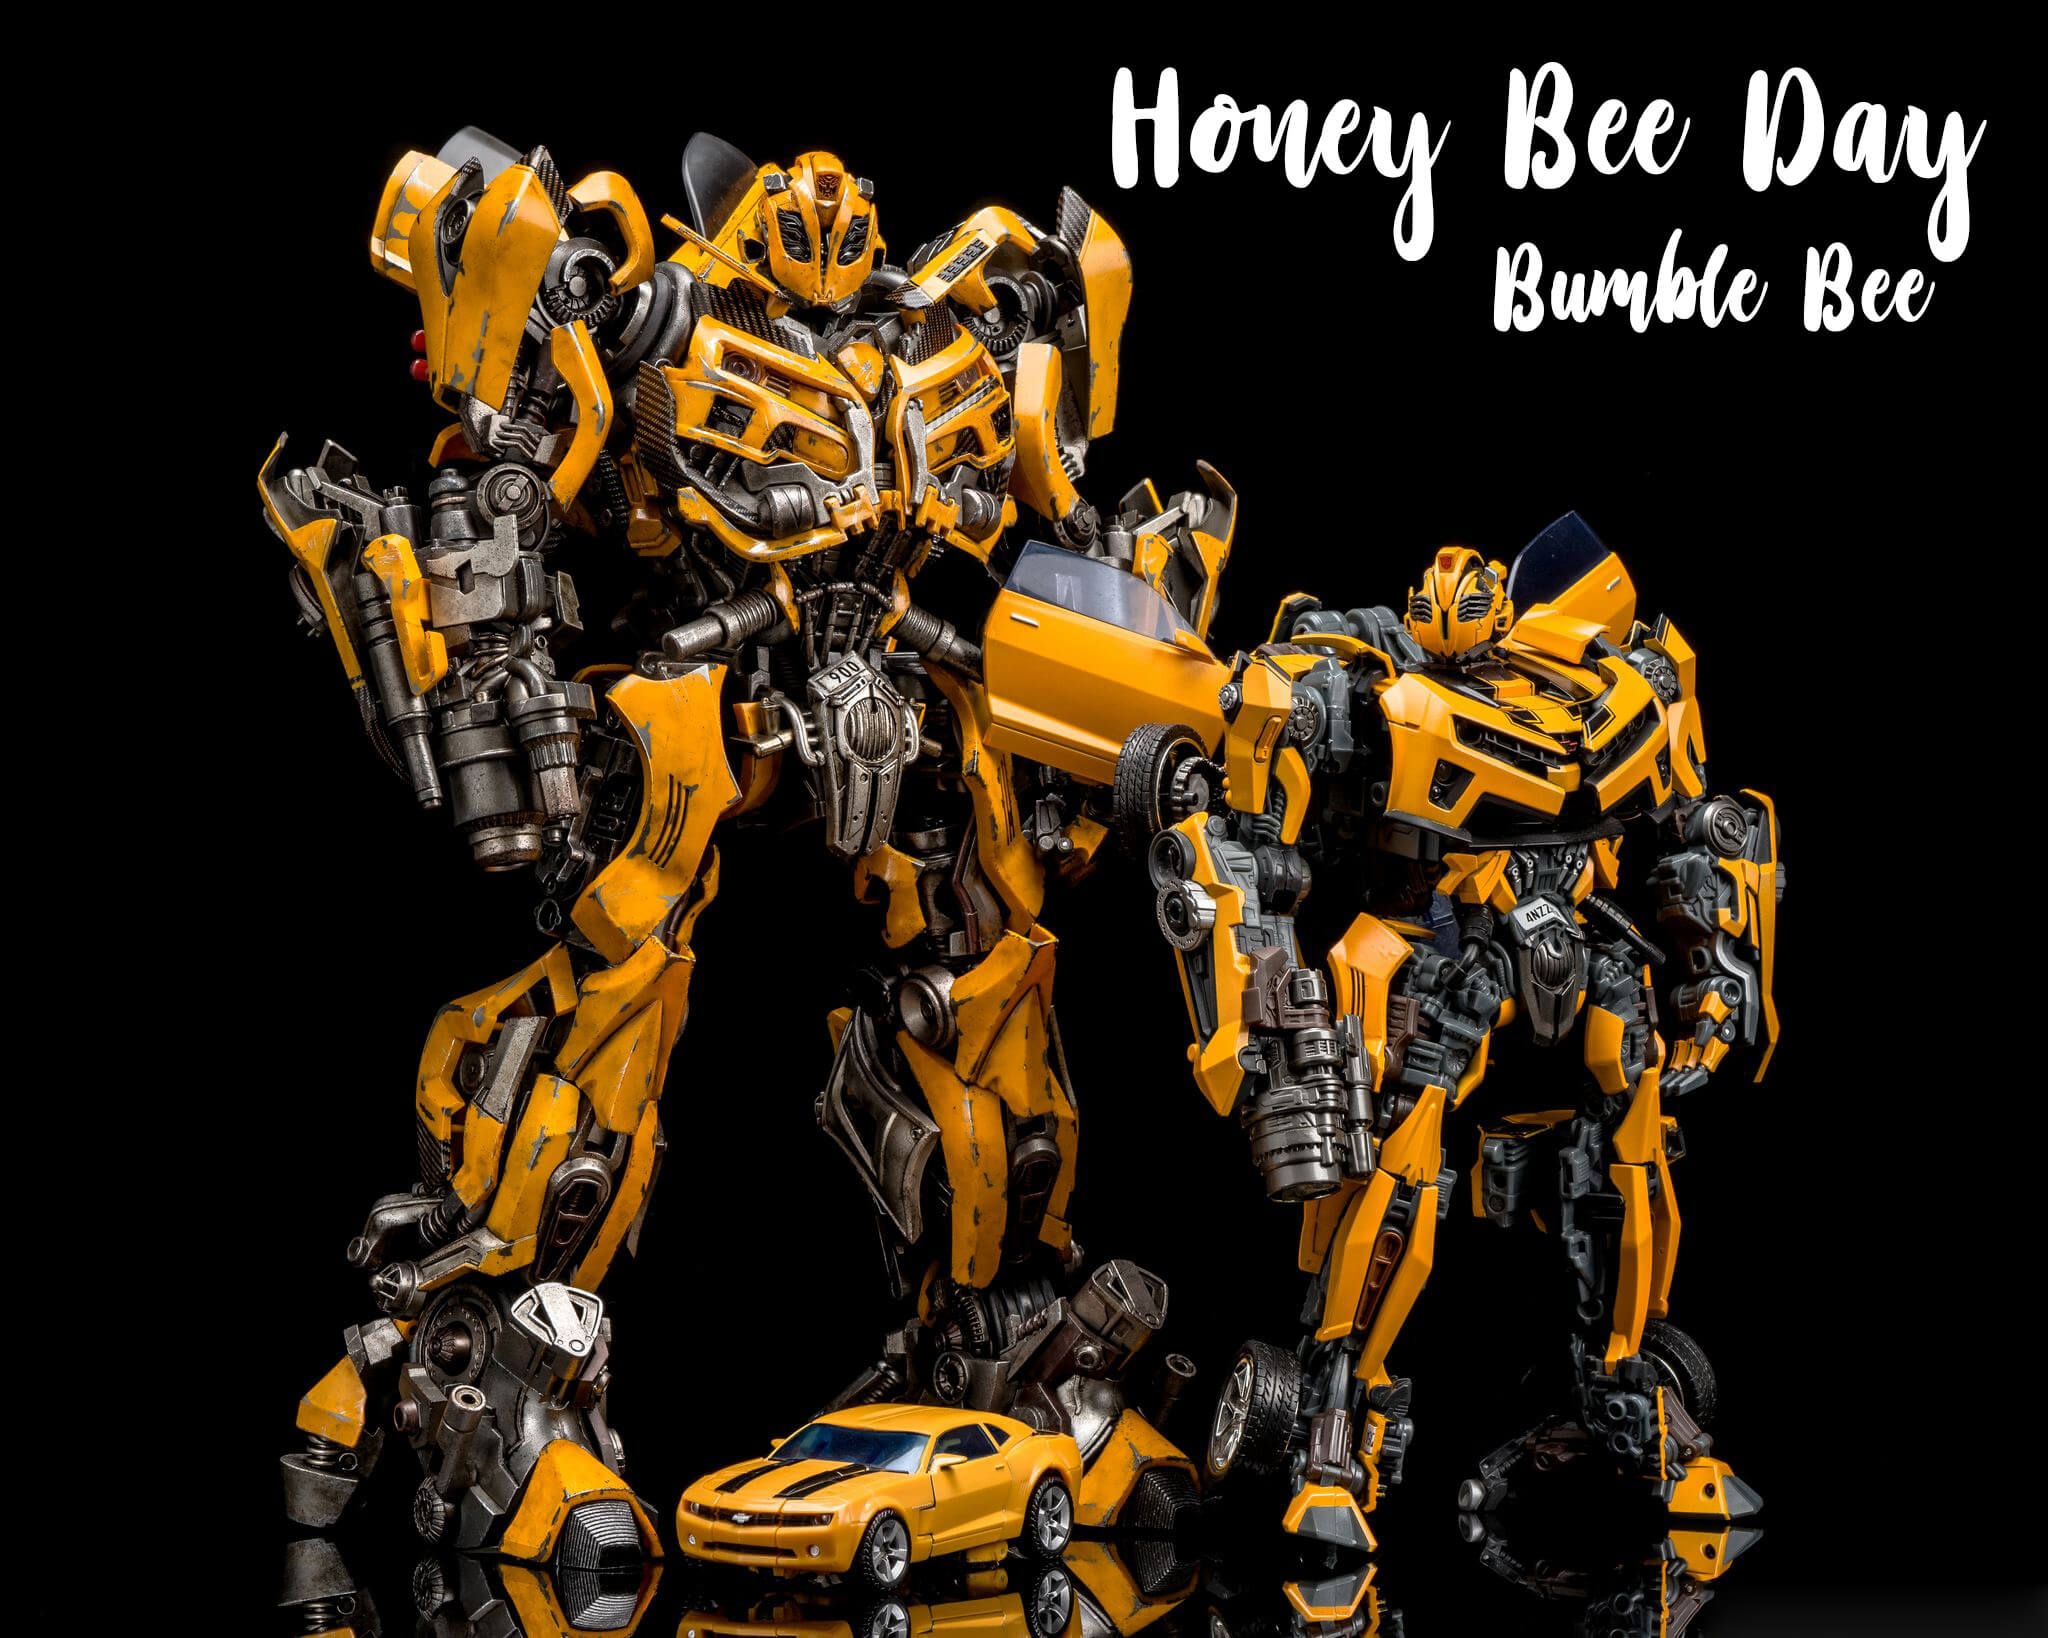 happy honey bee day transformers bumblebee pc hd wallpaper